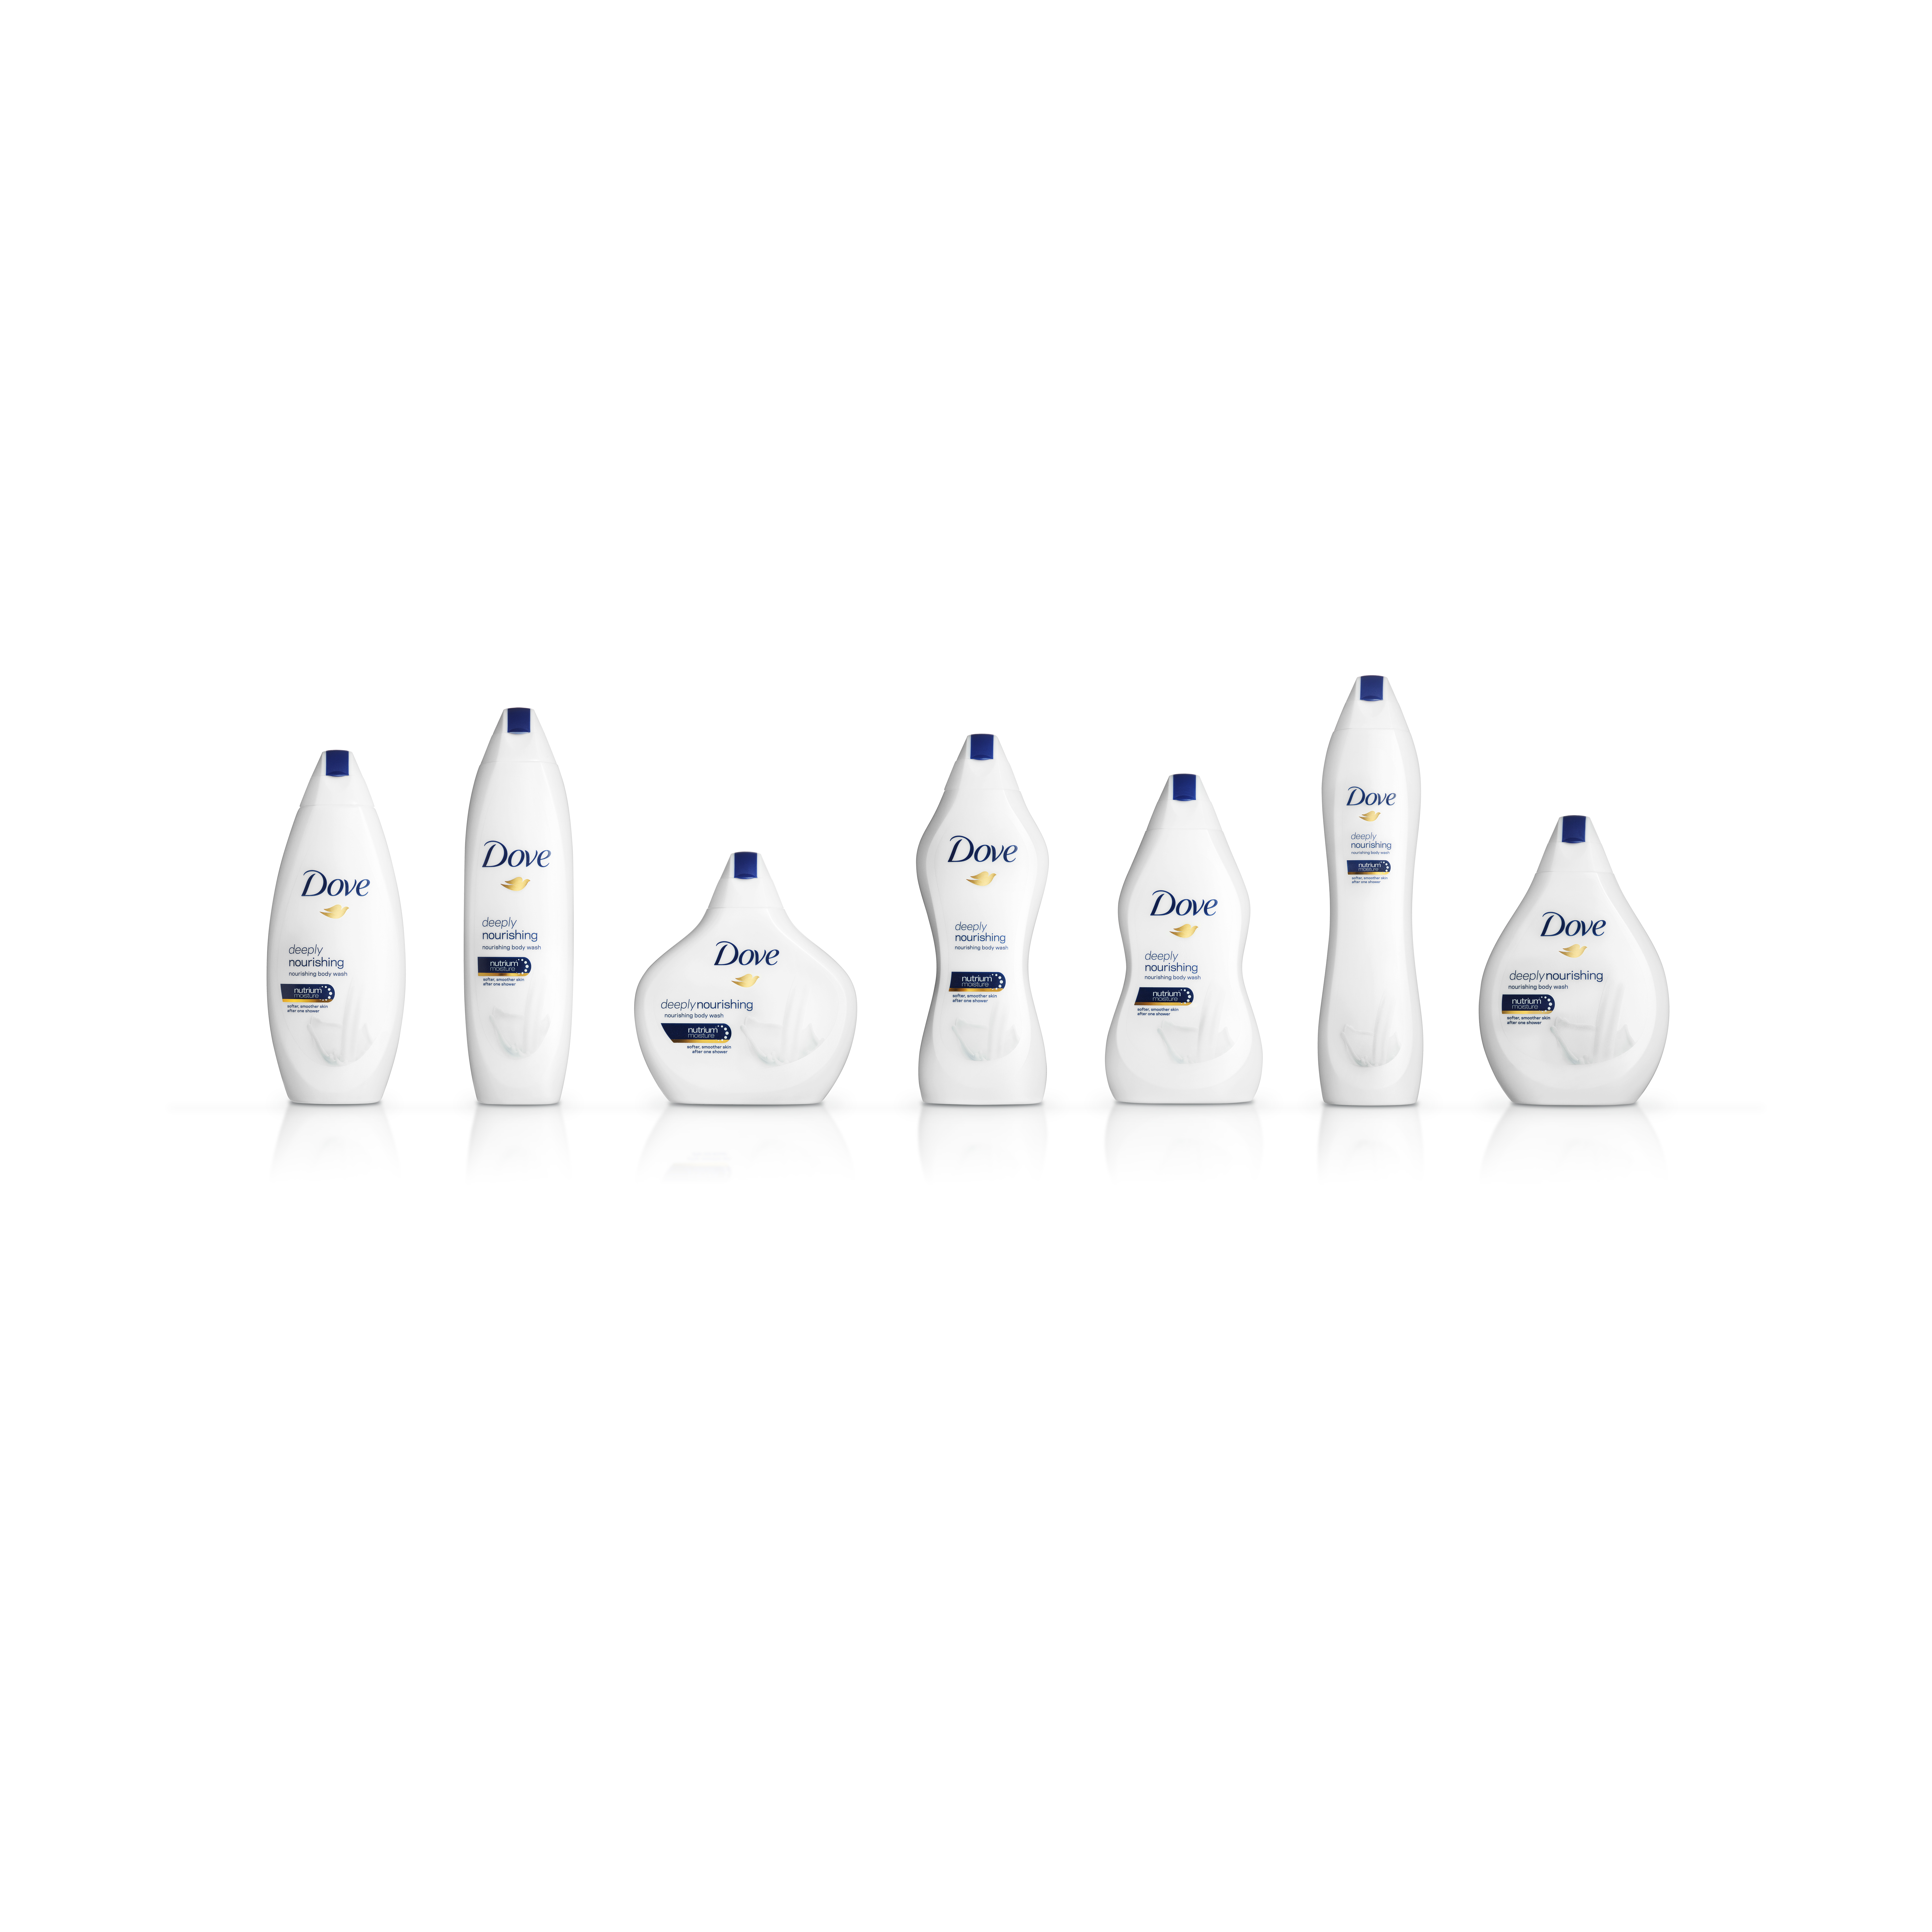 Dove releases soap bottles shaped for different body types